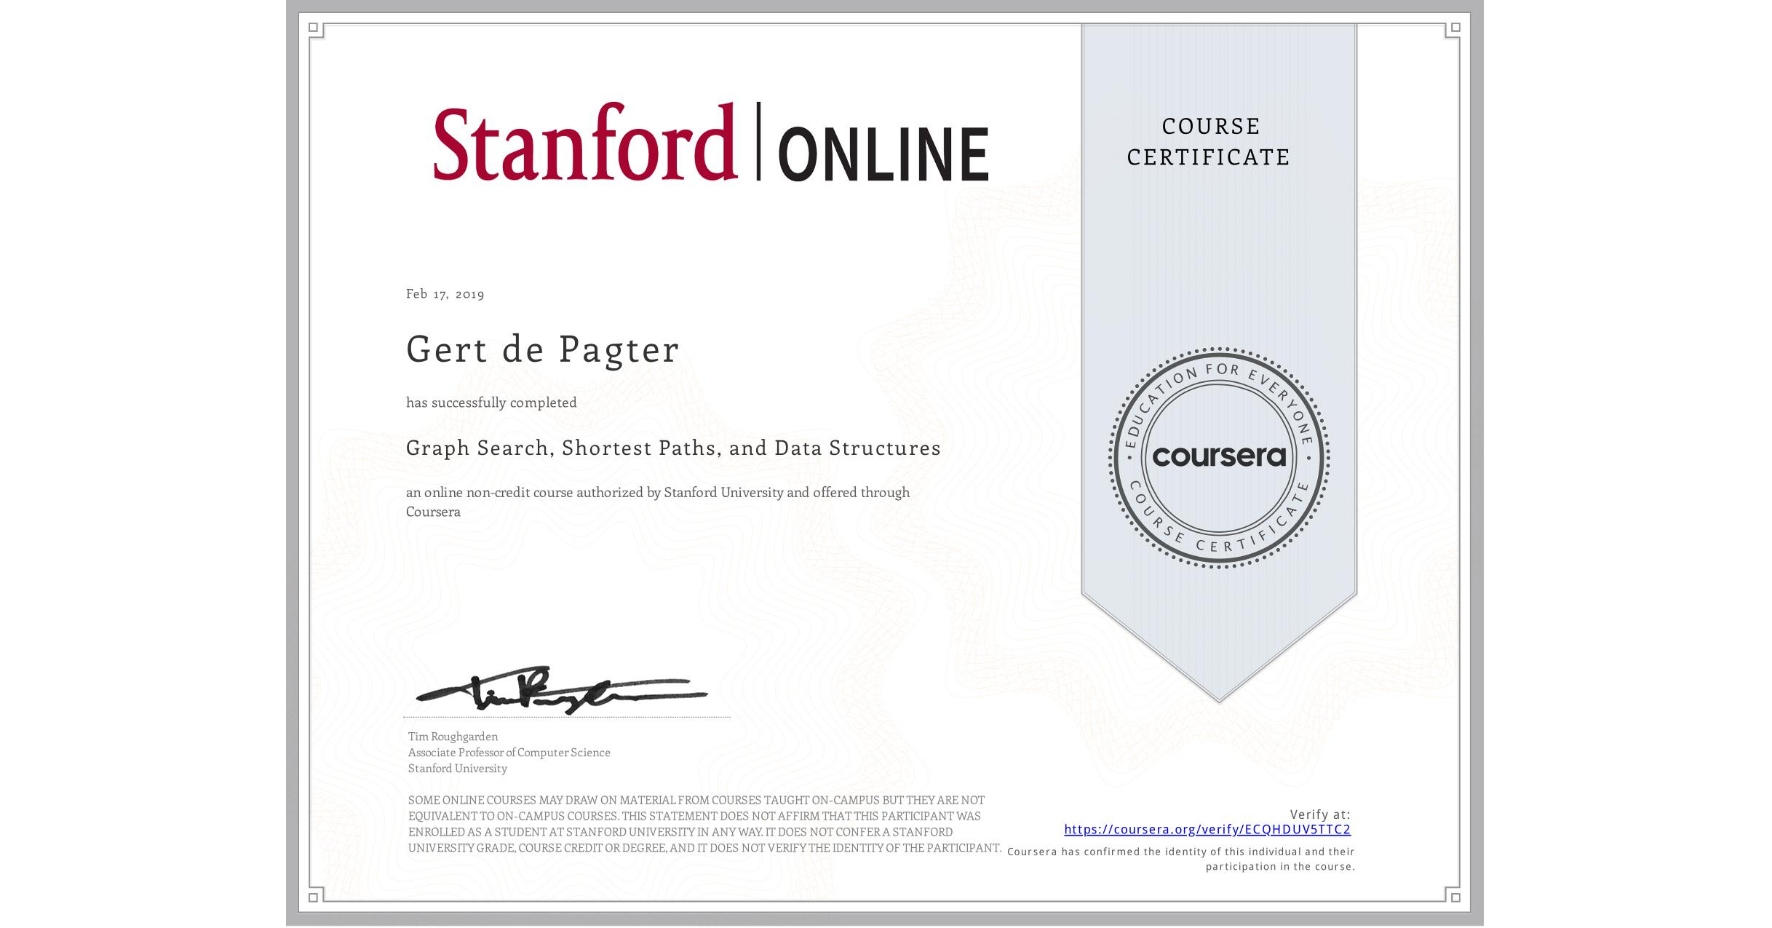 View certificate for Gert de Pagter, Graph Search, Shortest Paths, and Data Structures, an online non-credit course authorized by Stanford University and offered through Coursera